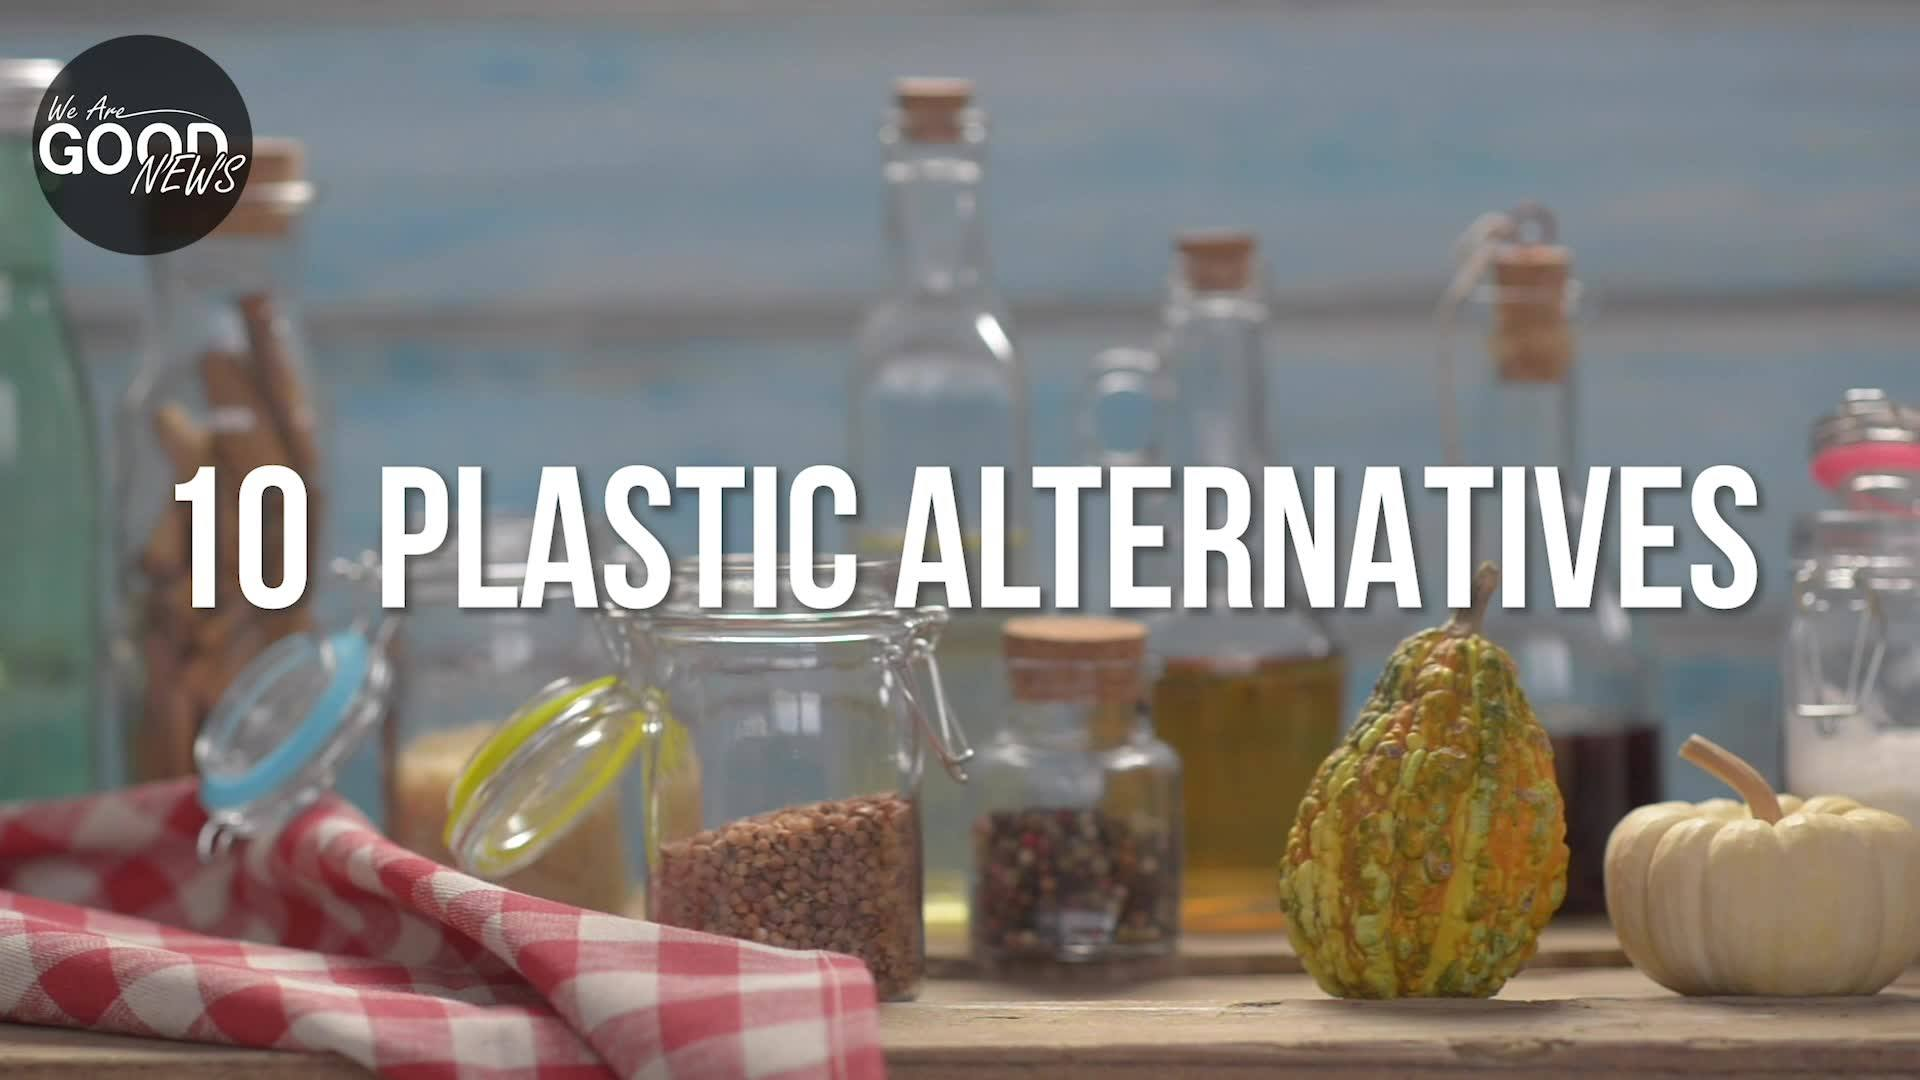 Report: 90% Of Plastic Is Not Recycled